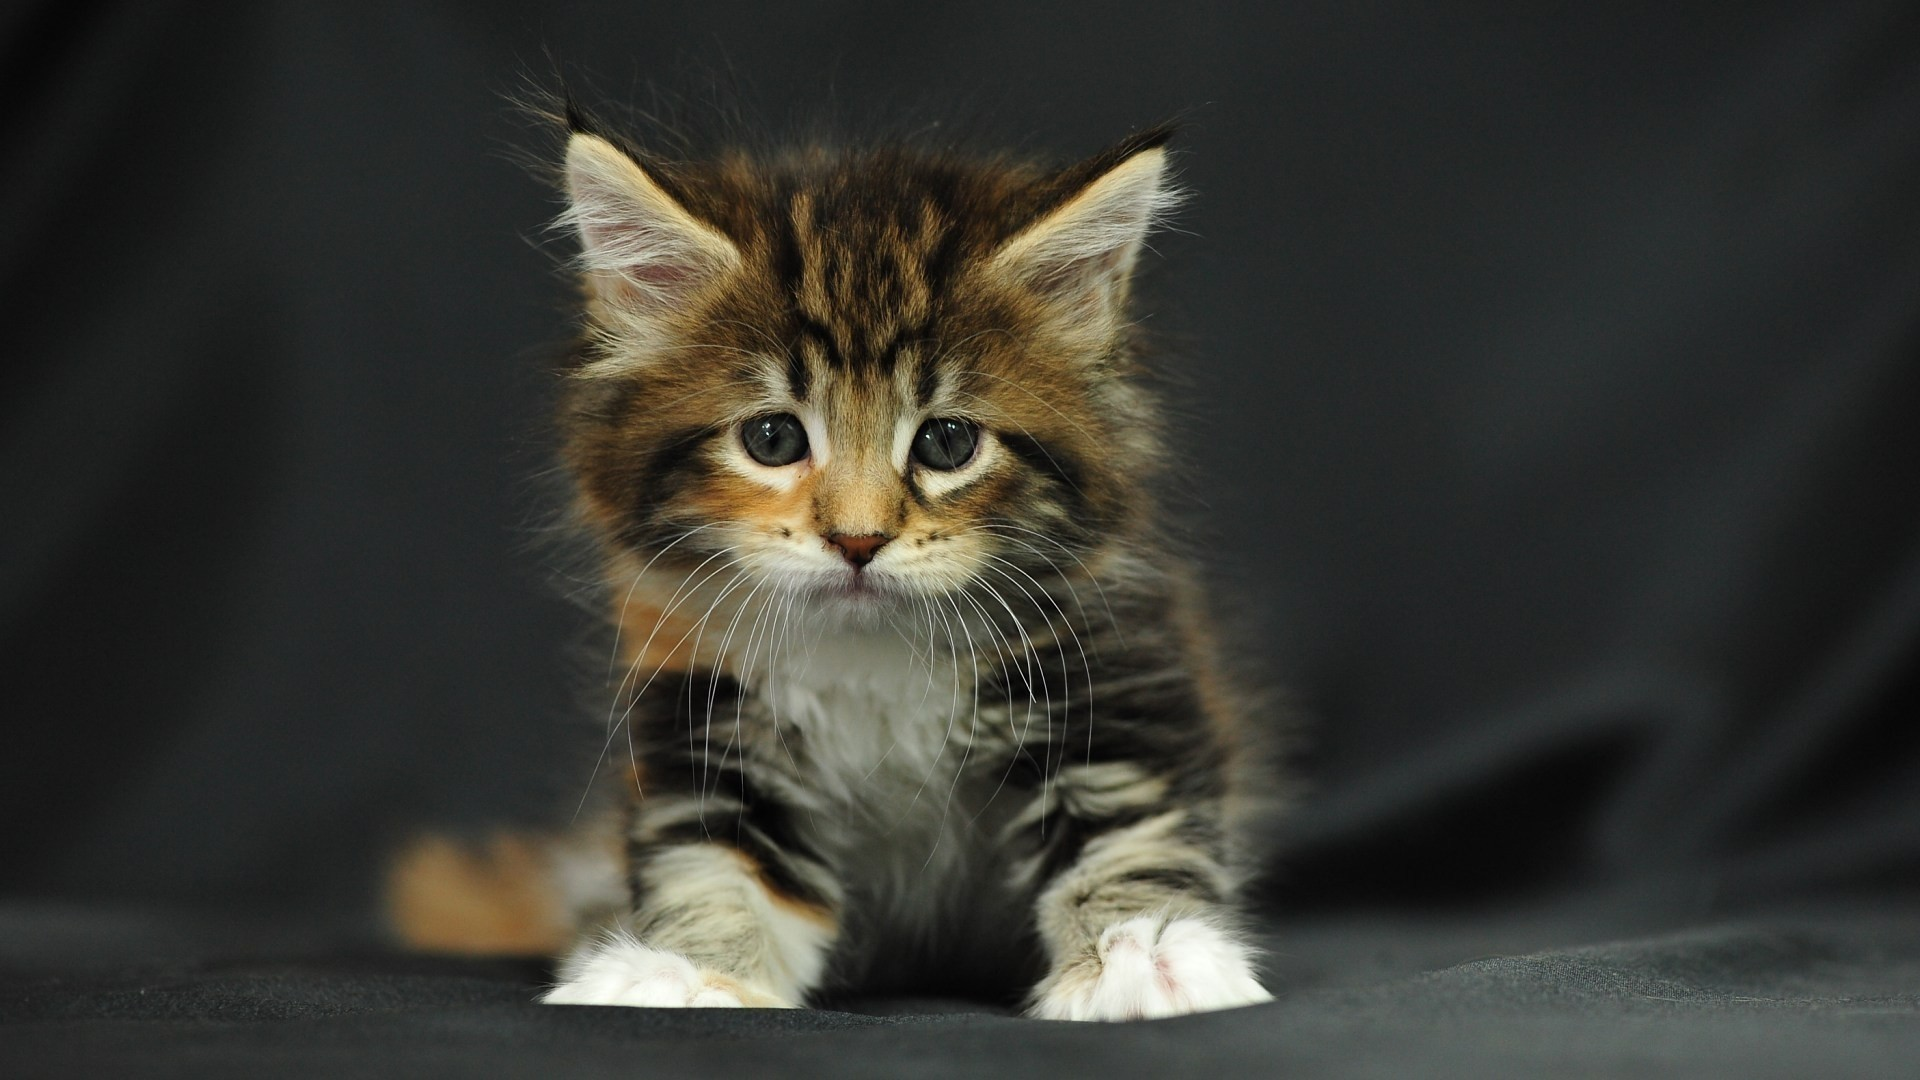 Baby kittens wallpaper 63 images - Kitten backgrounds ...